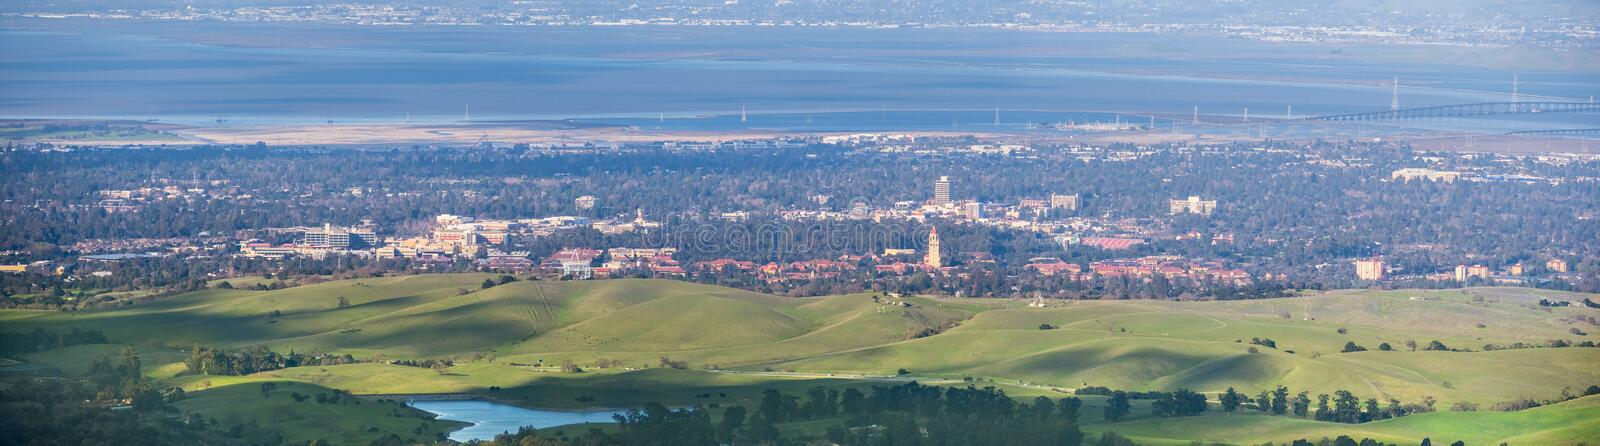 Aerial view of Stanford royalty free stock photo